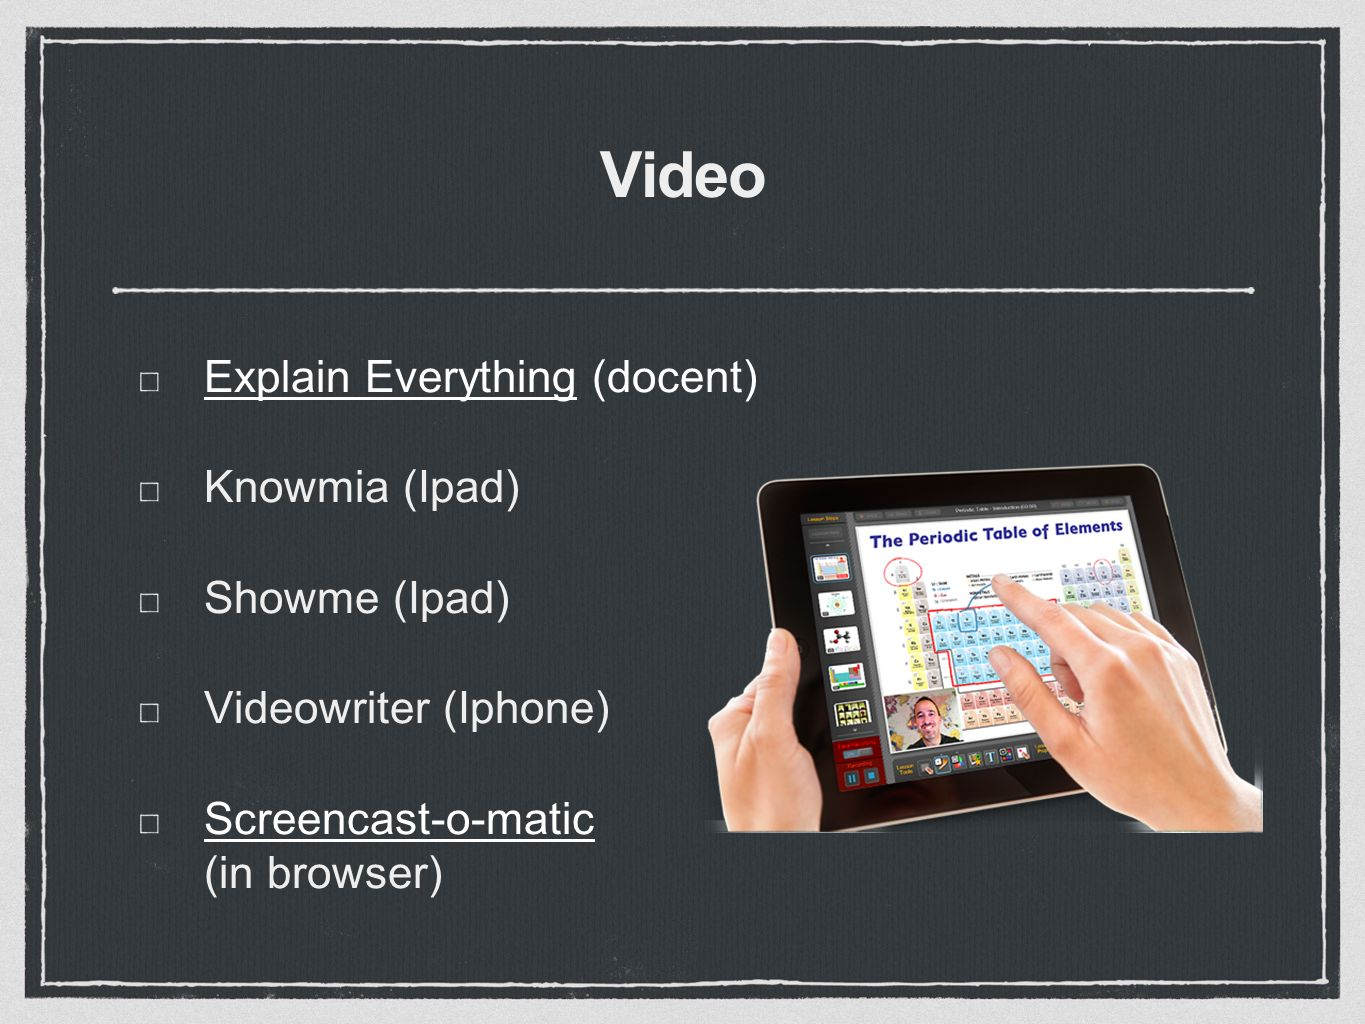 Video Explain EverythingExplain Everything (docent) Knowmia (Ipad) Showme (Ipad) Videowriter (Iphone) Screencast-o-matic Screencast-o-matic (in browser)